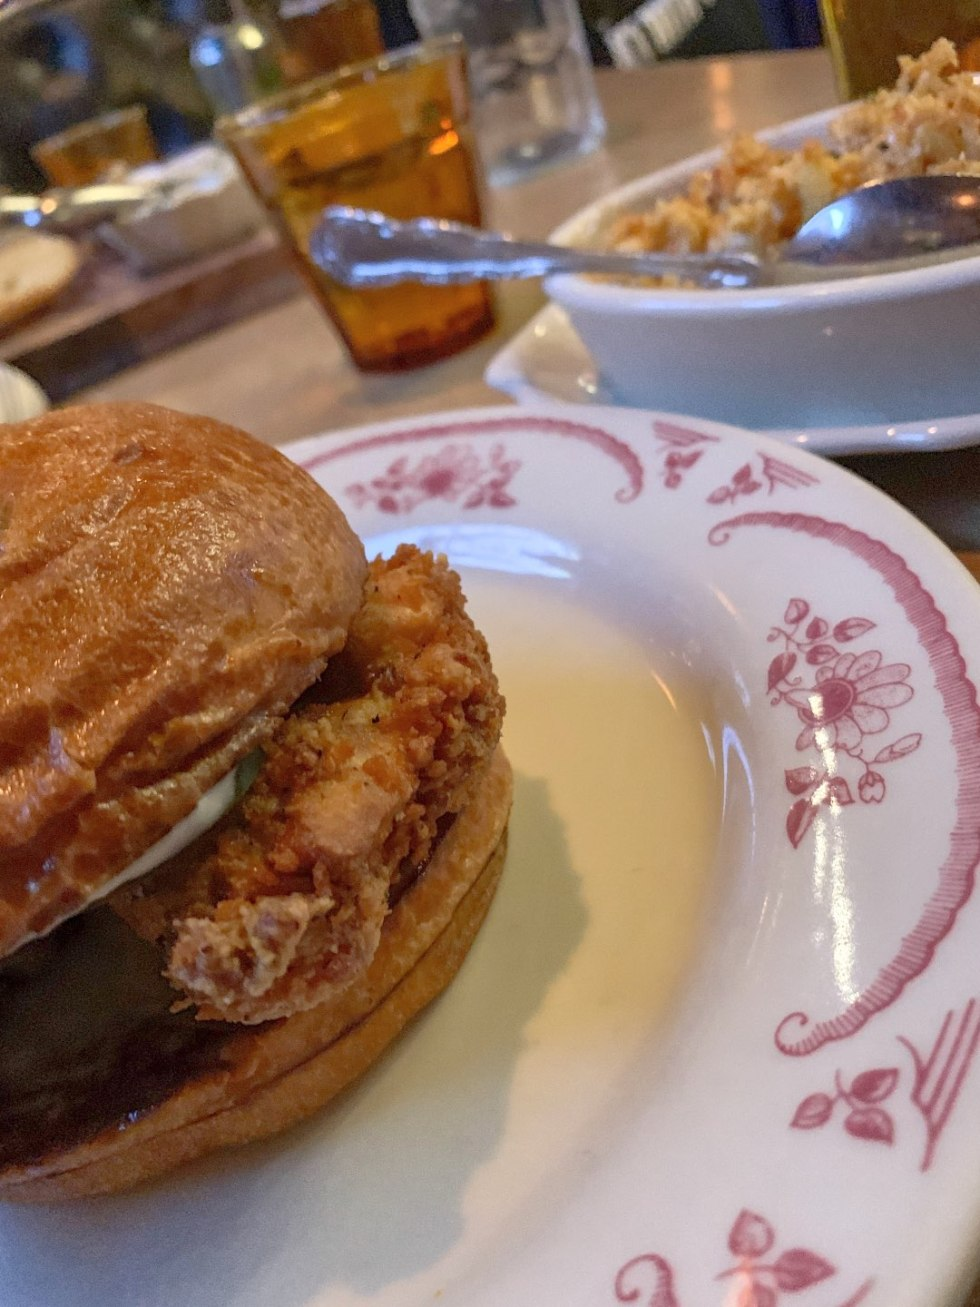 Chicago Getaway: The Best Things to Do and Places to Eat - I'm Fixin' To - @mbg0112